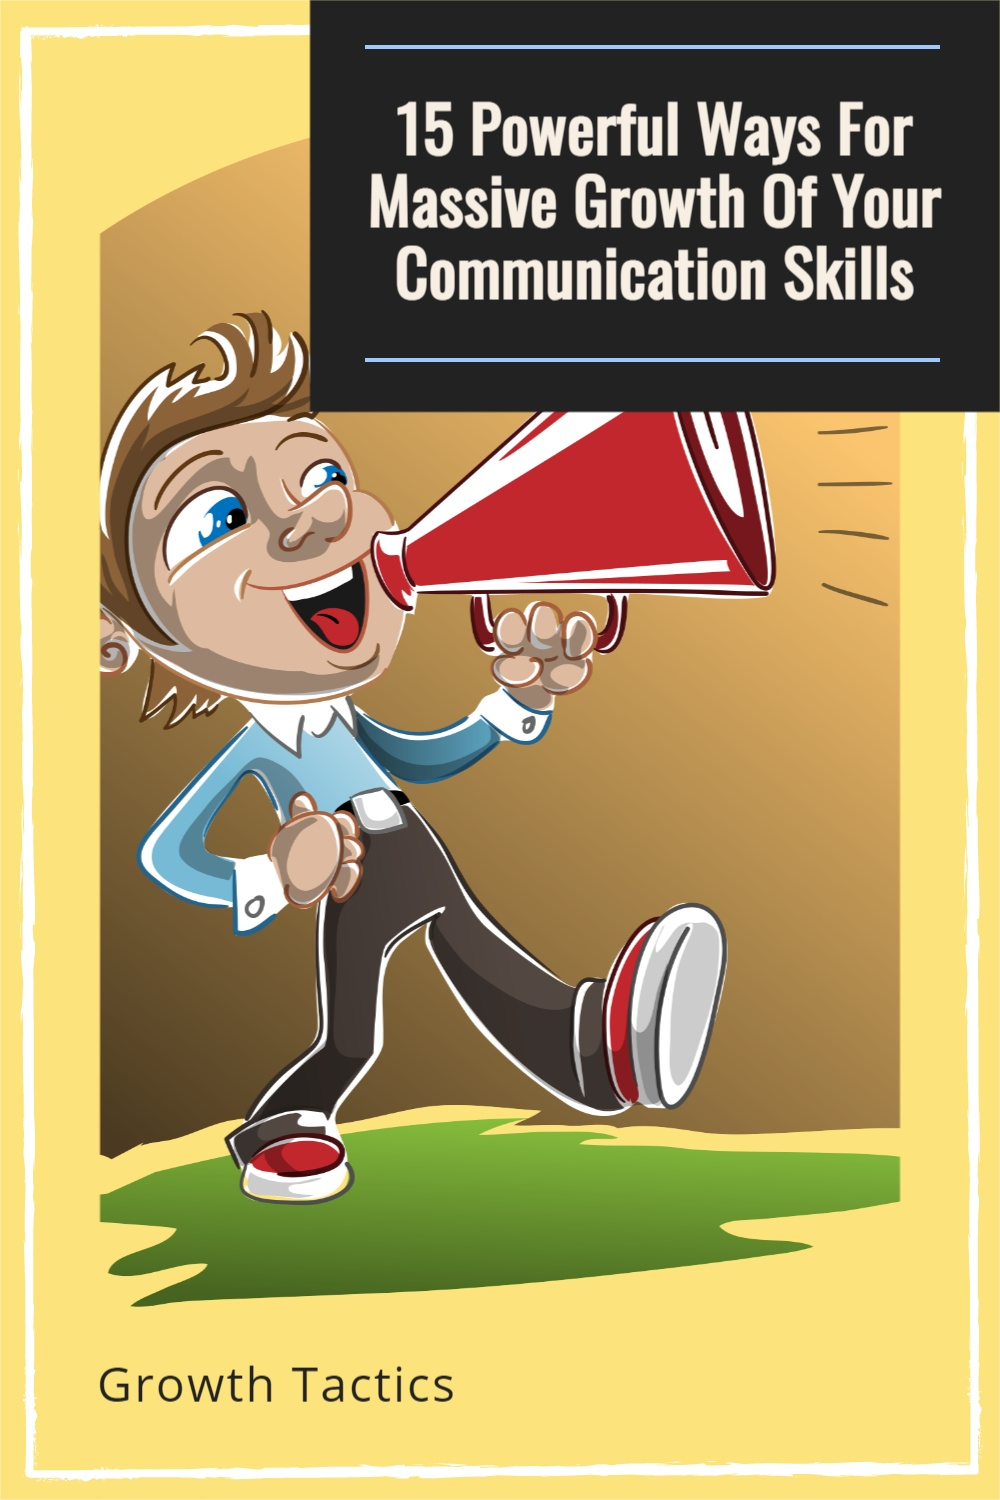 15 Powerful Ways For Massive Growth Of Your Communication Skills